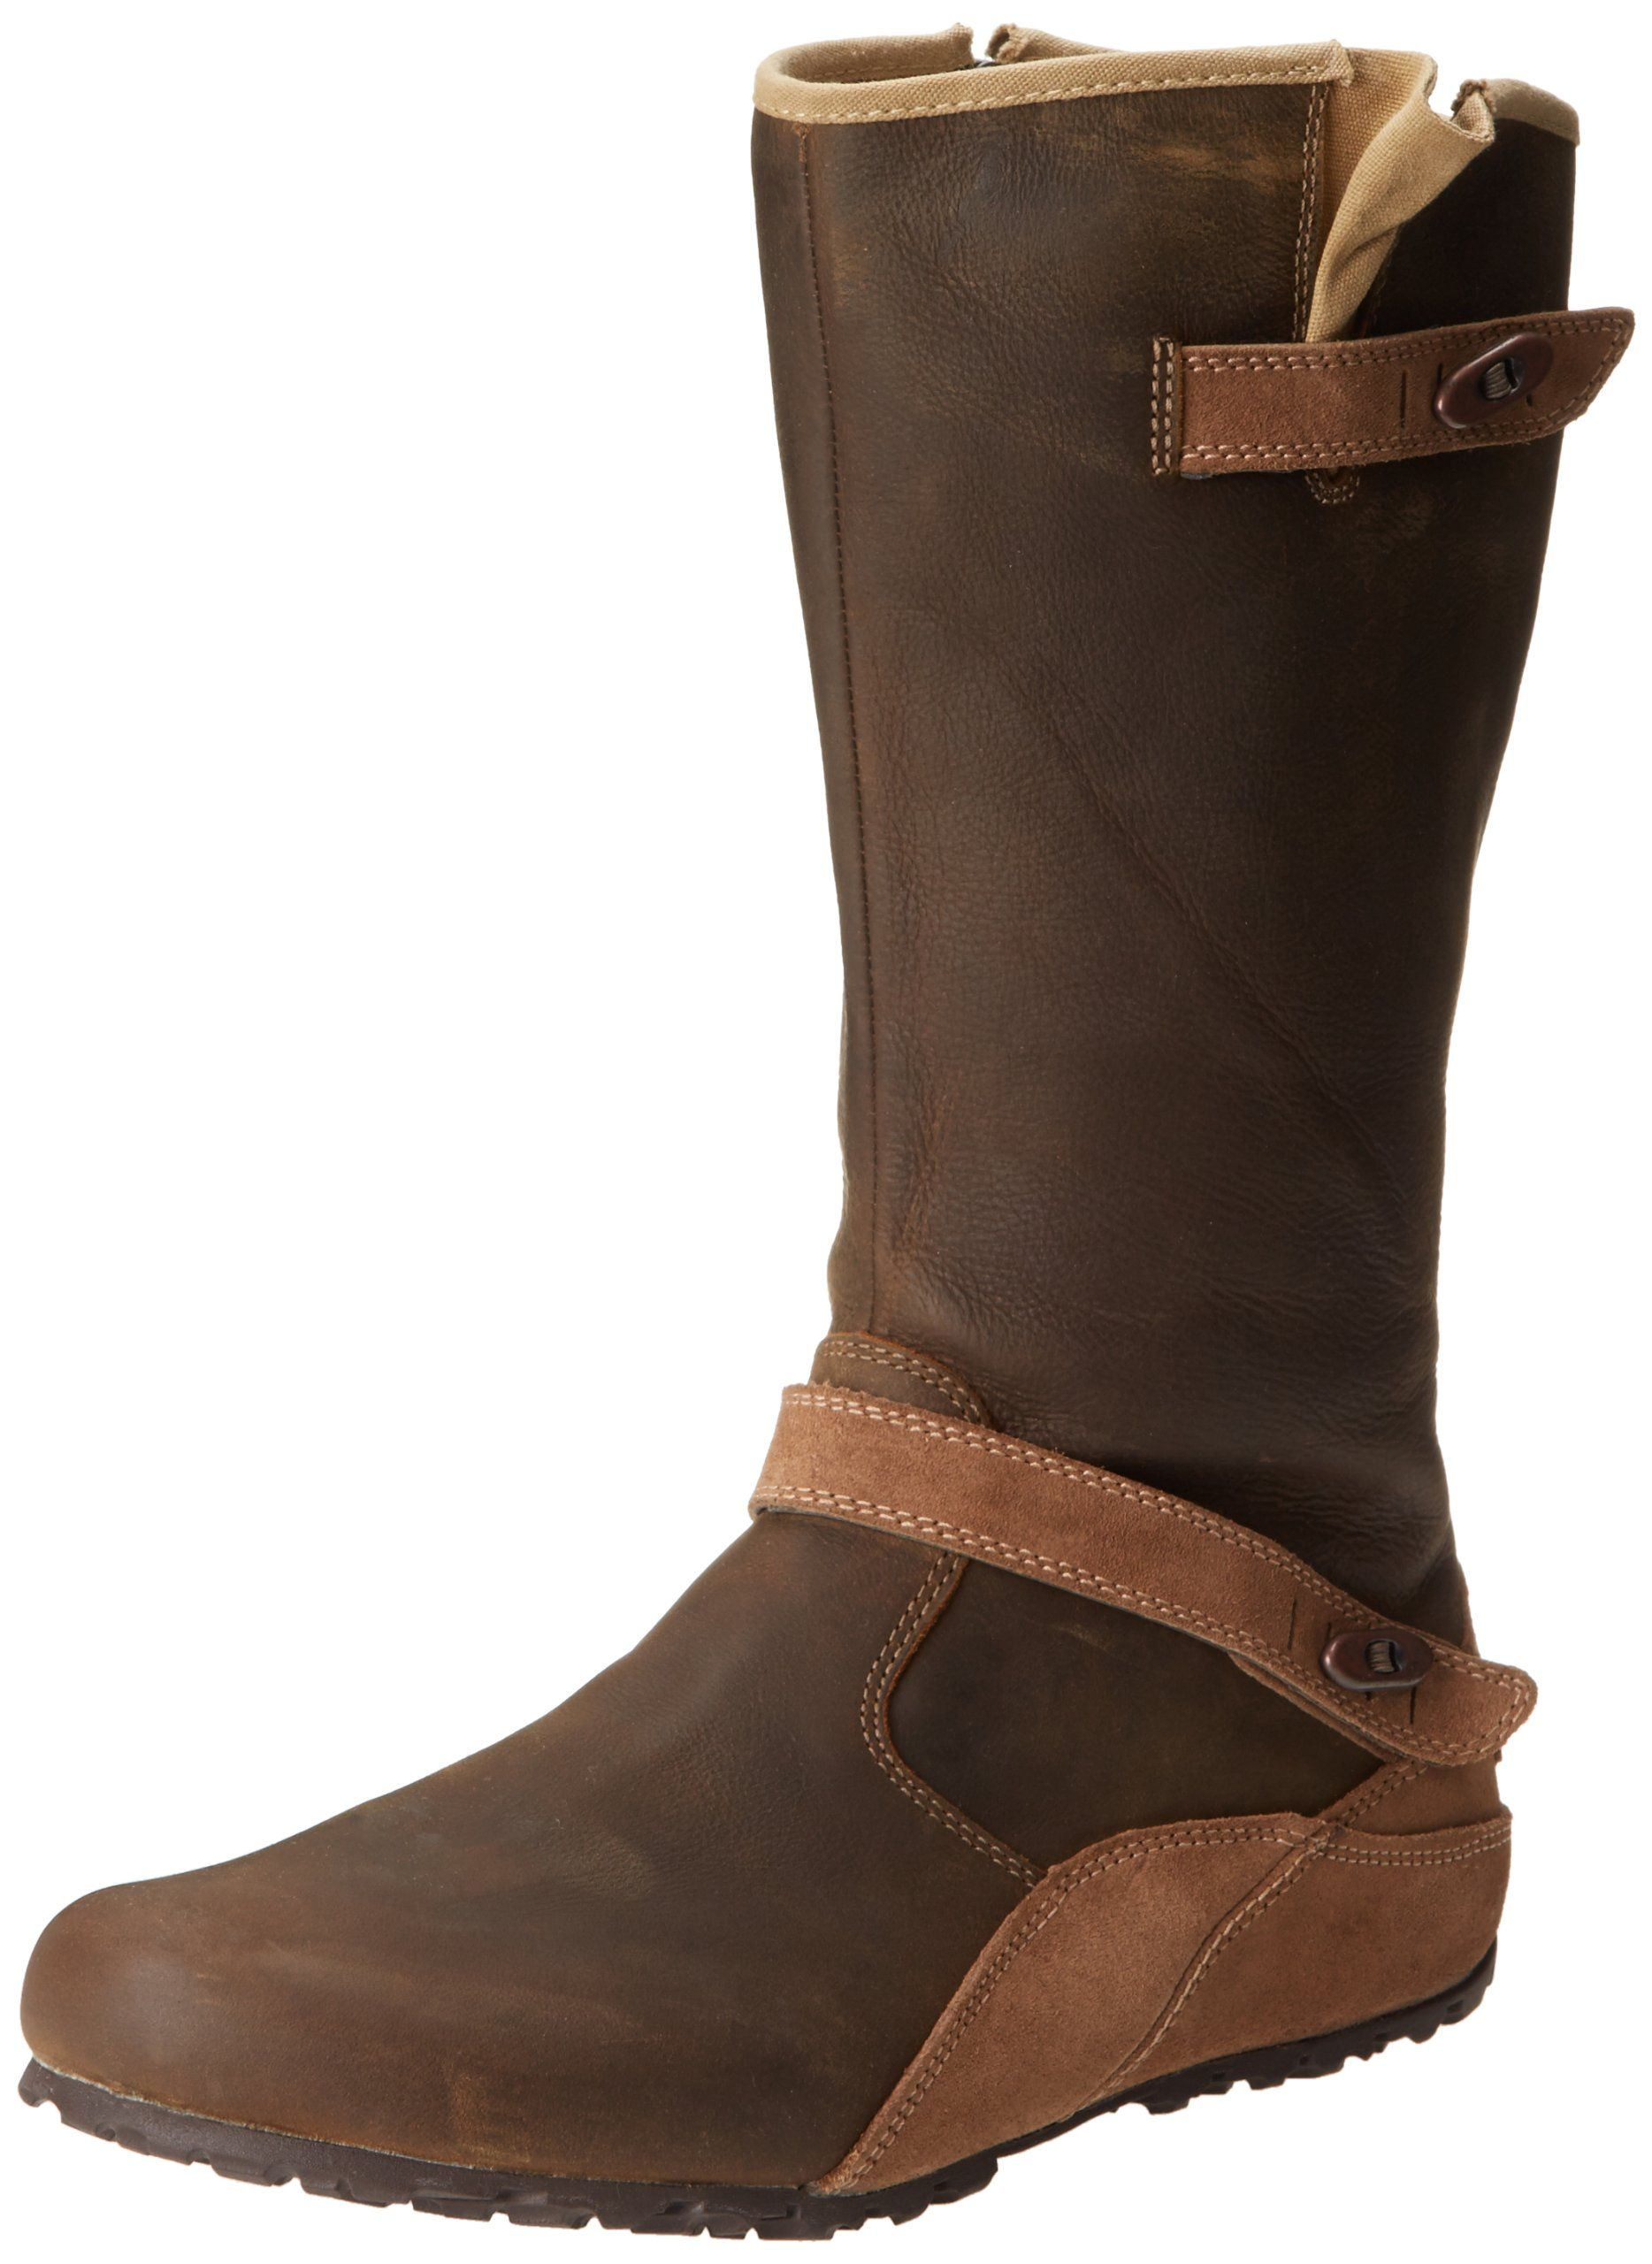 Women's Haven Autumn Waterproof Boot